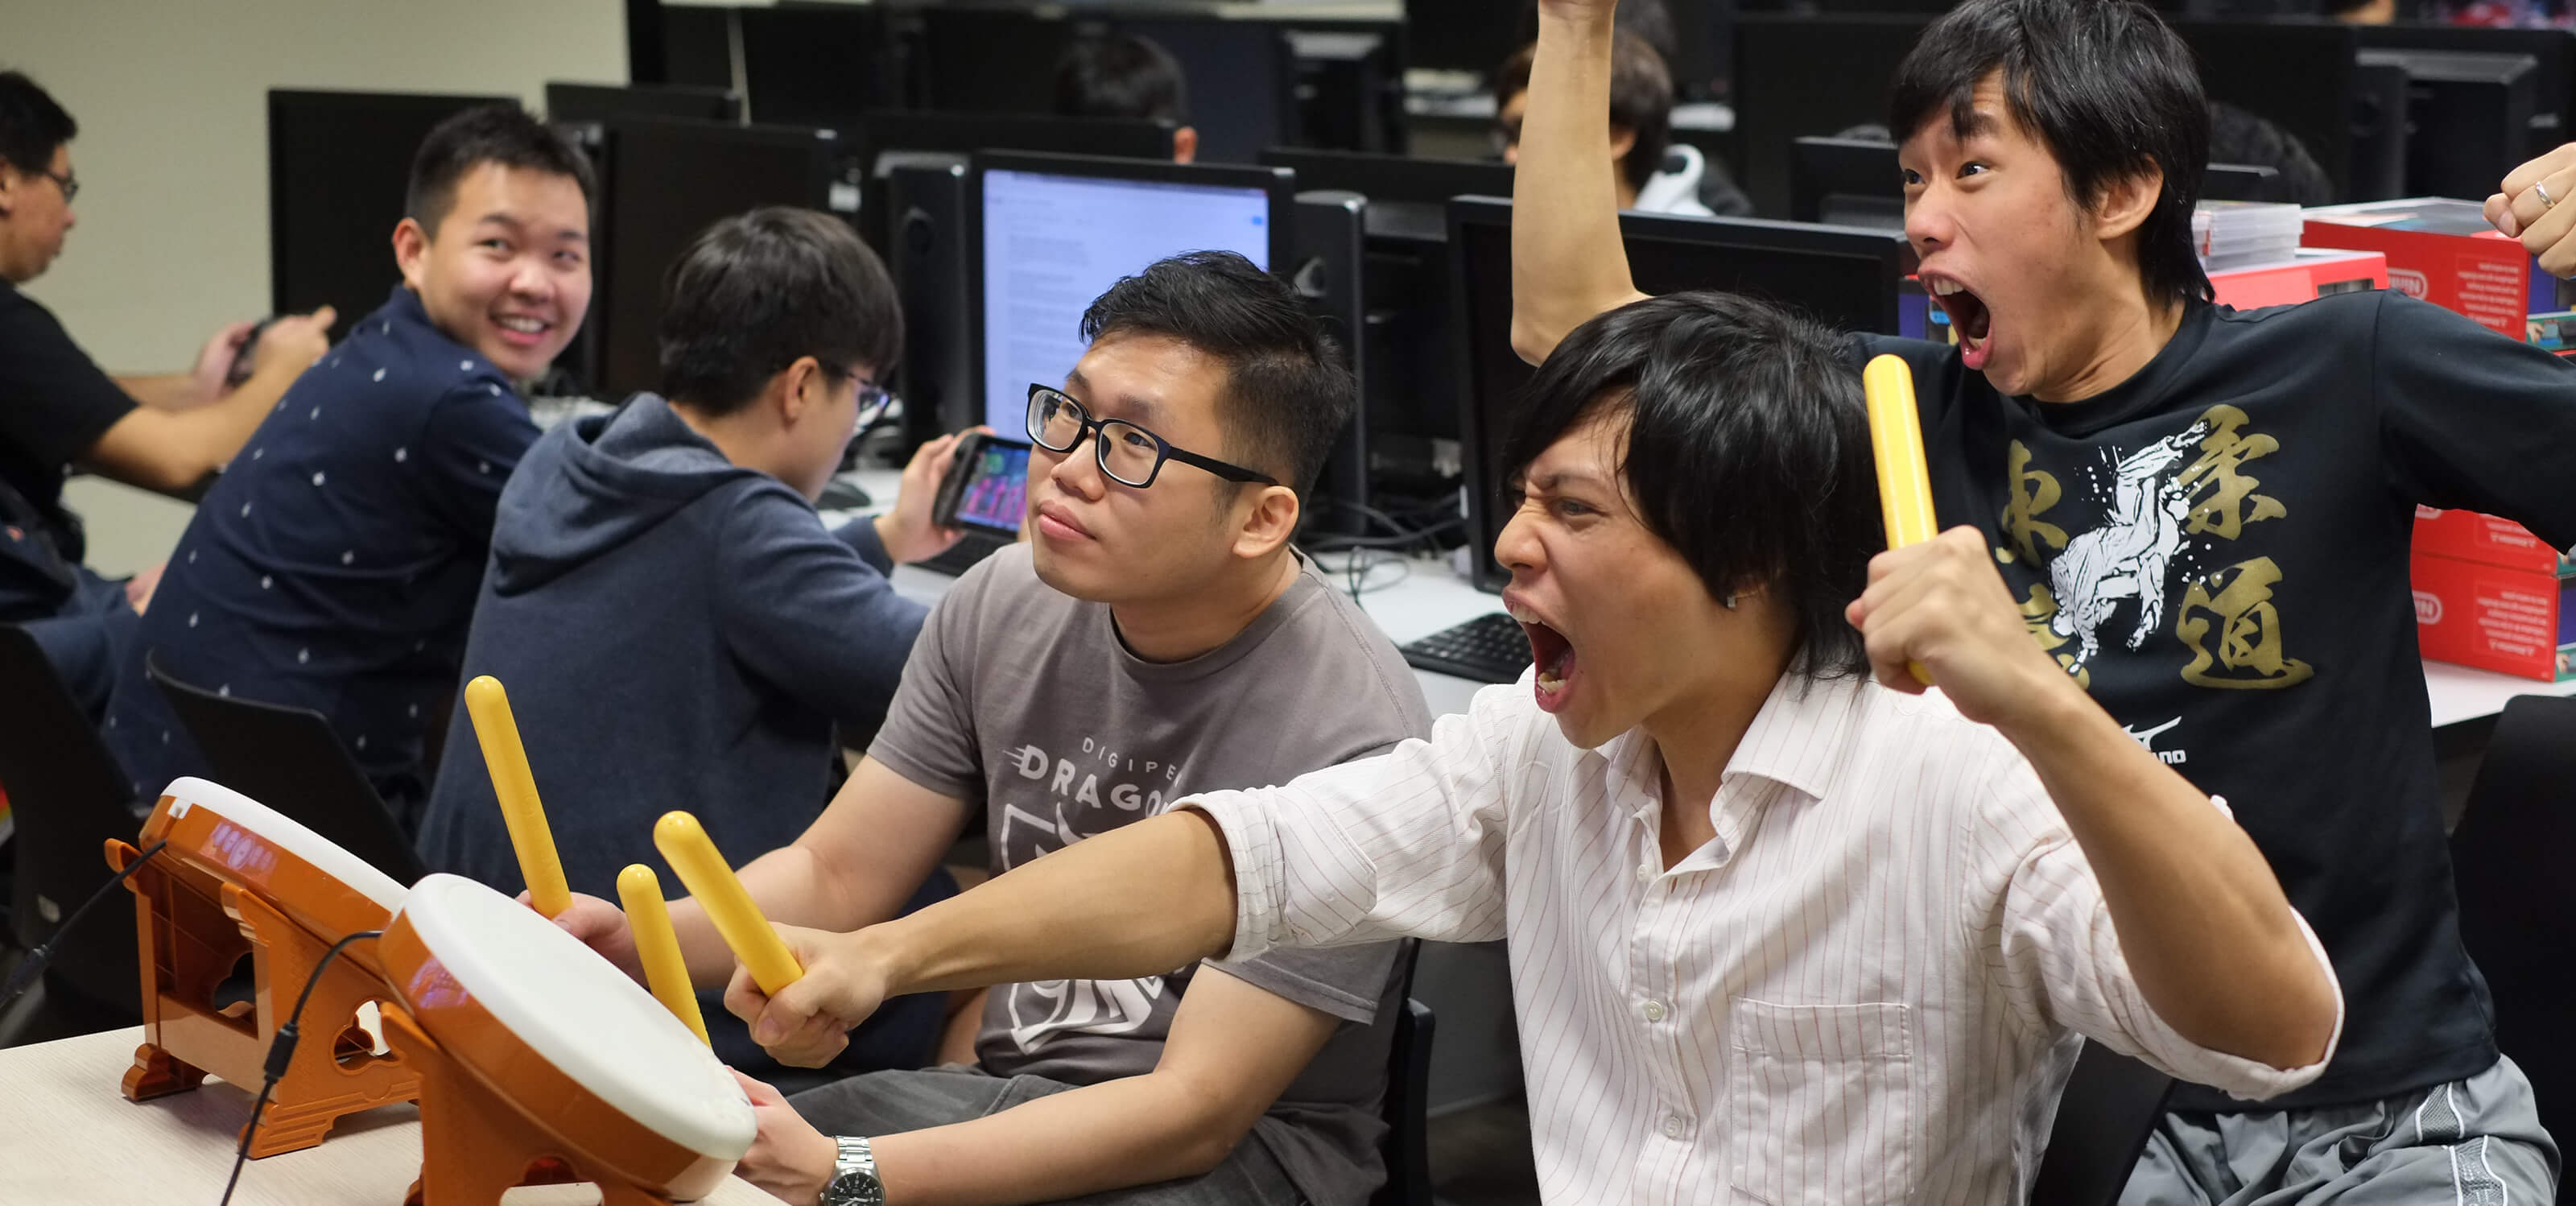 Students use yellow drumsticks to hammer away on a drum-type video game controller as others watch excitedly behind.